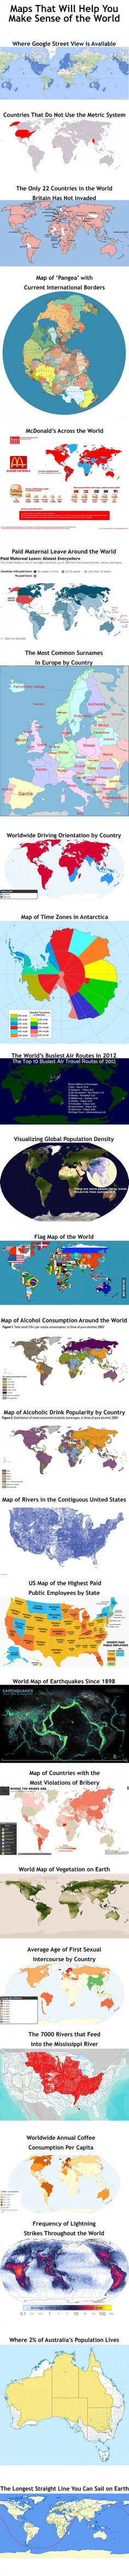 Maps That Will Help You Make Sense Of The World - will need to censor some if in classroom